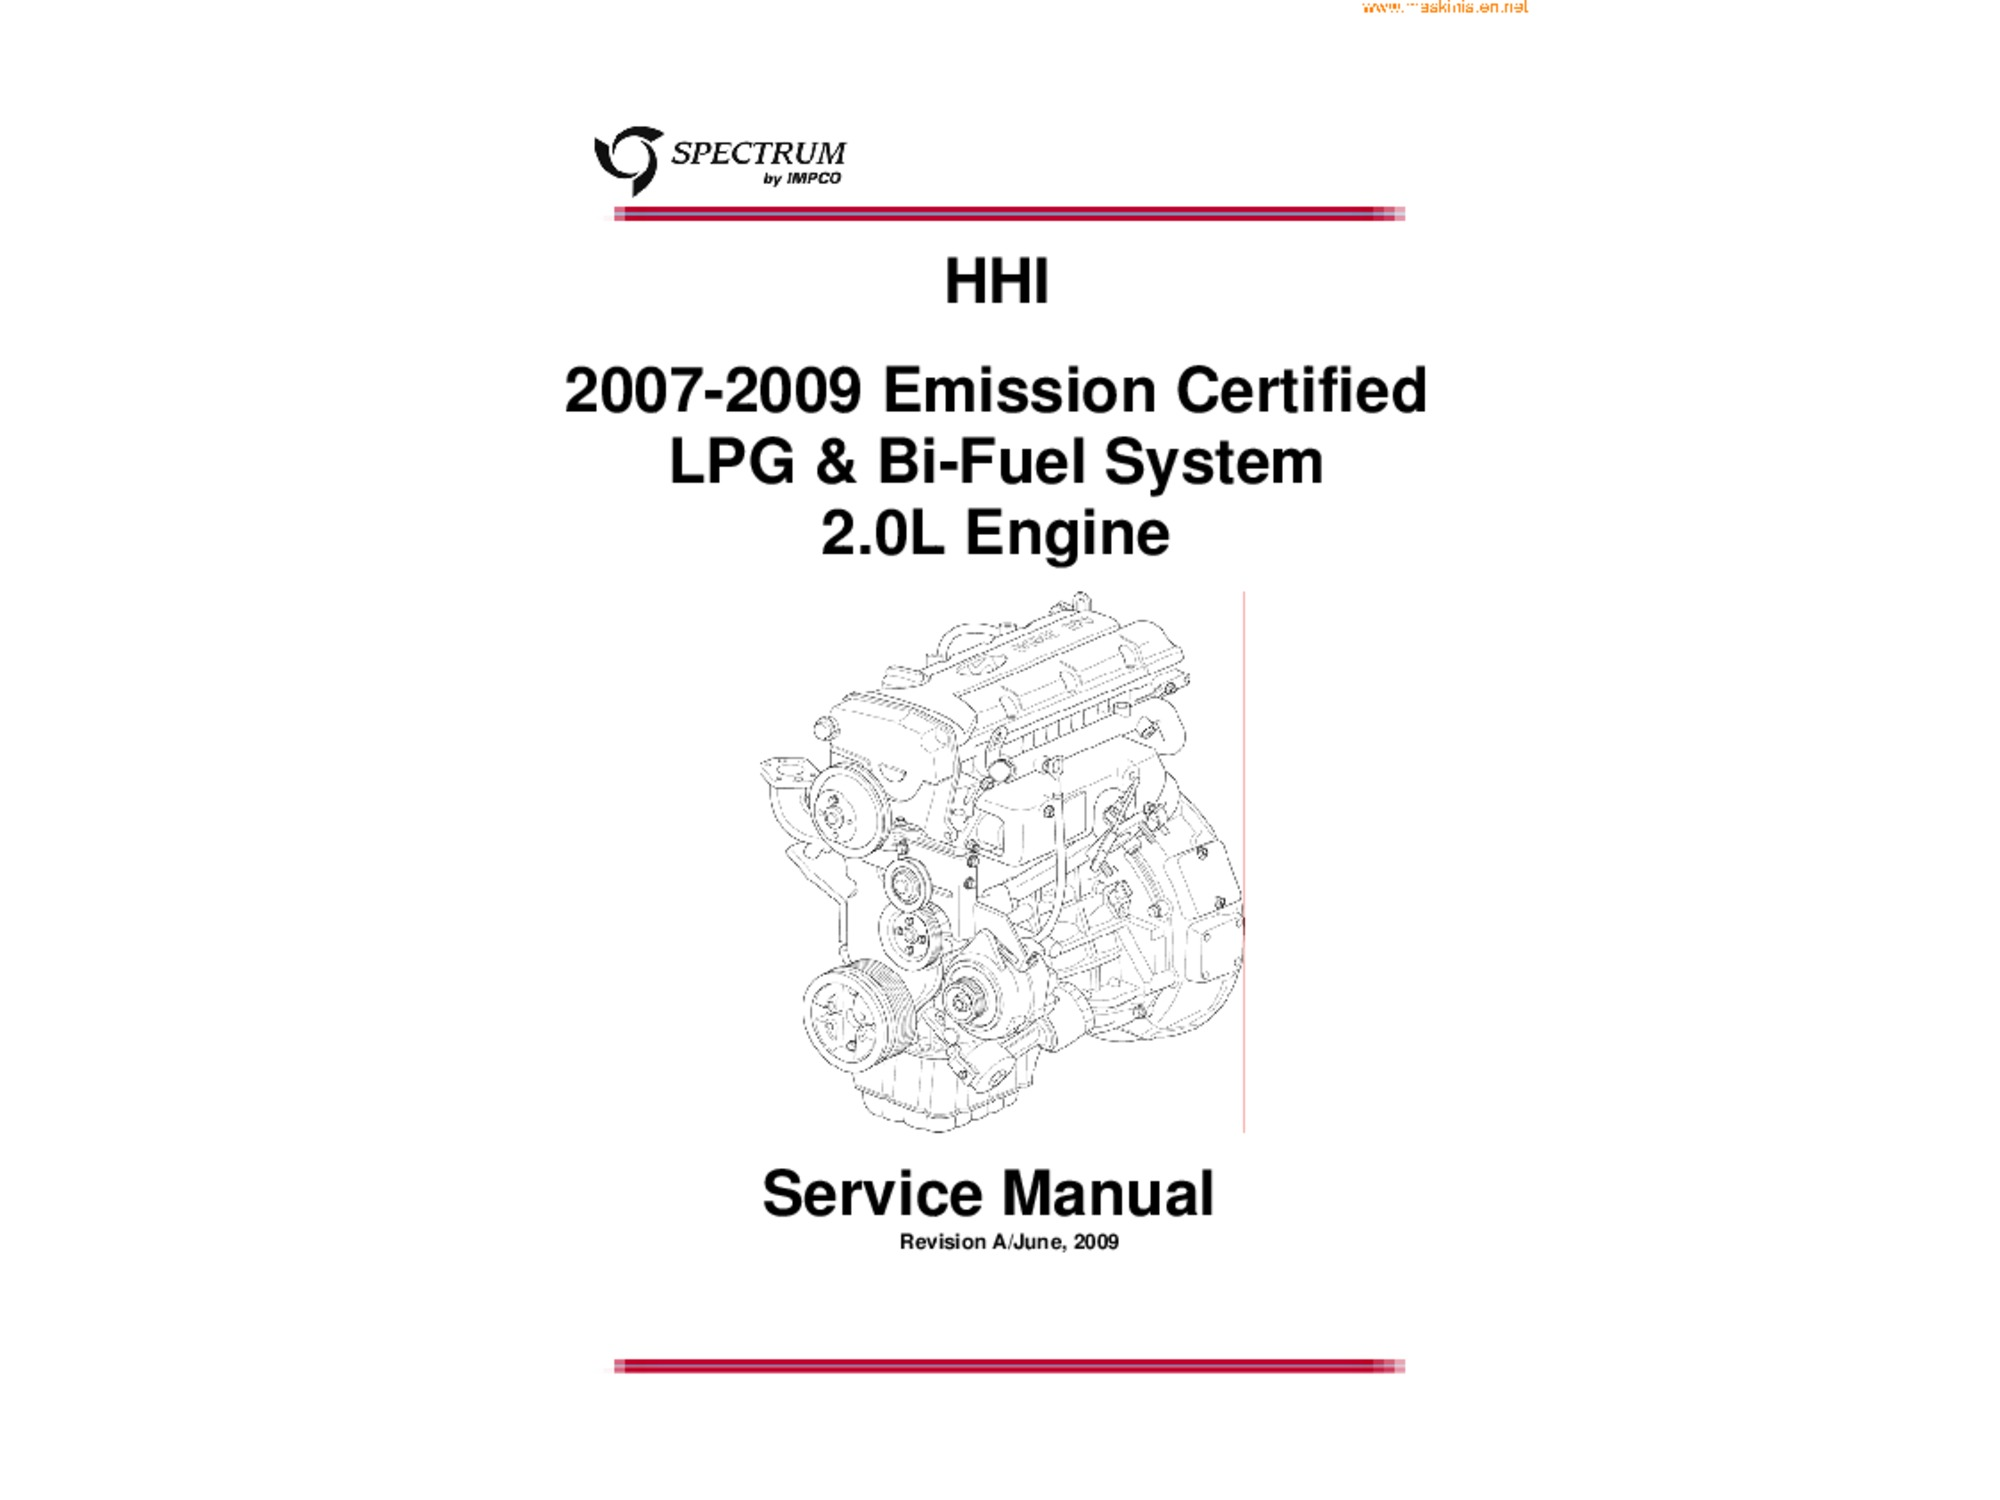 impco lpg fuel systems service manual